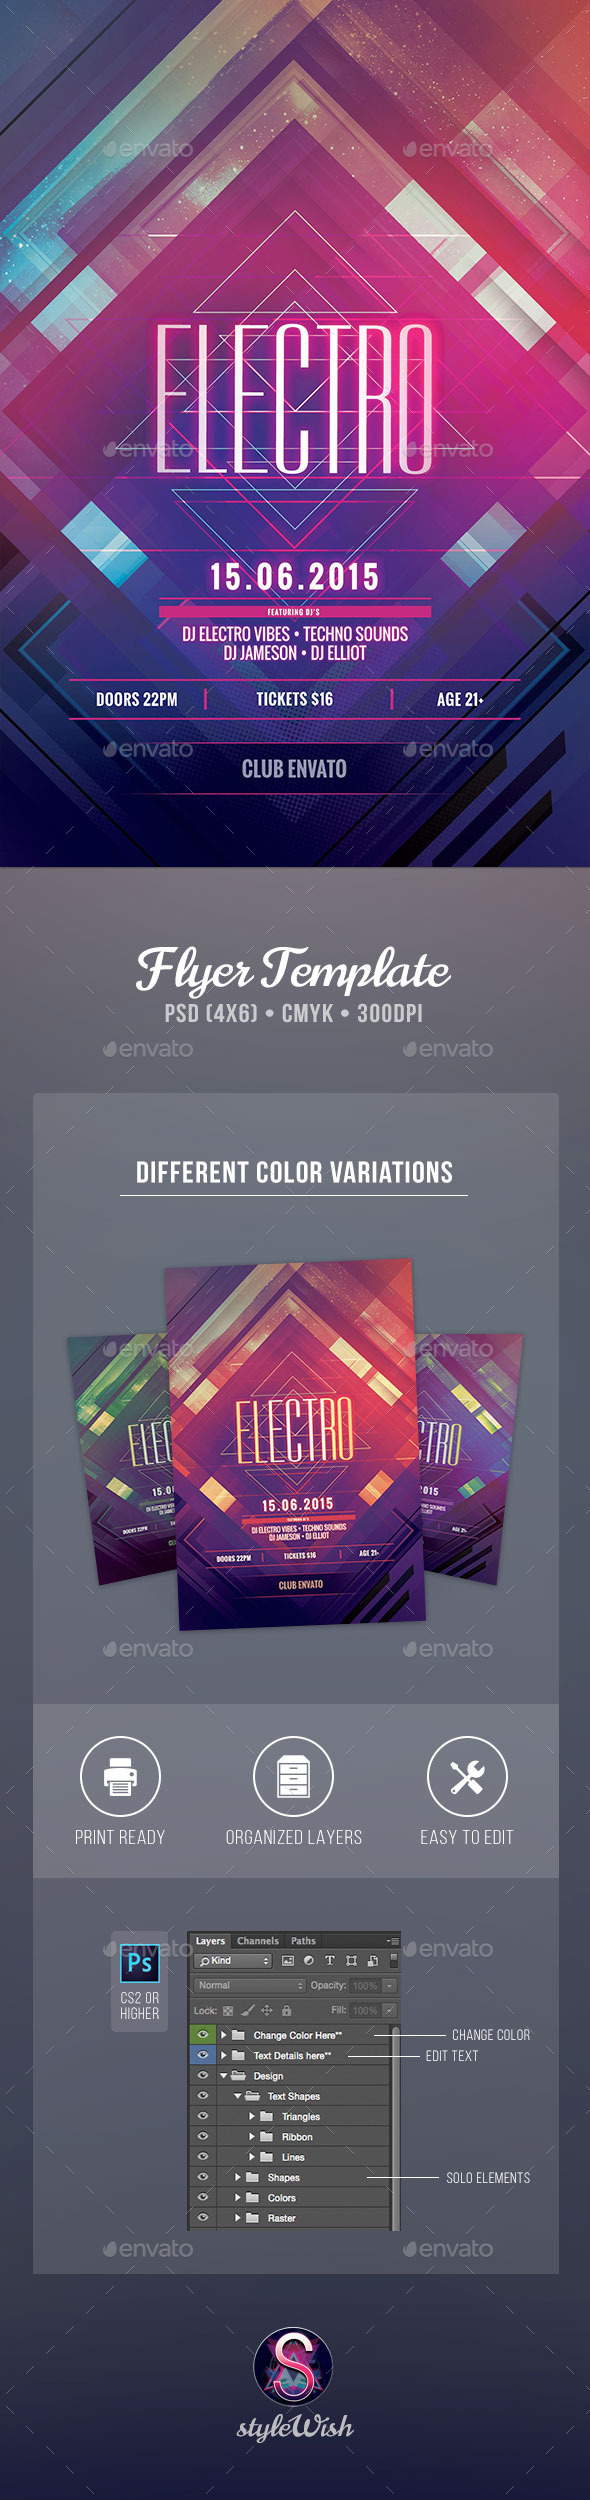 GraphicRiver Electro Flyer 11389158